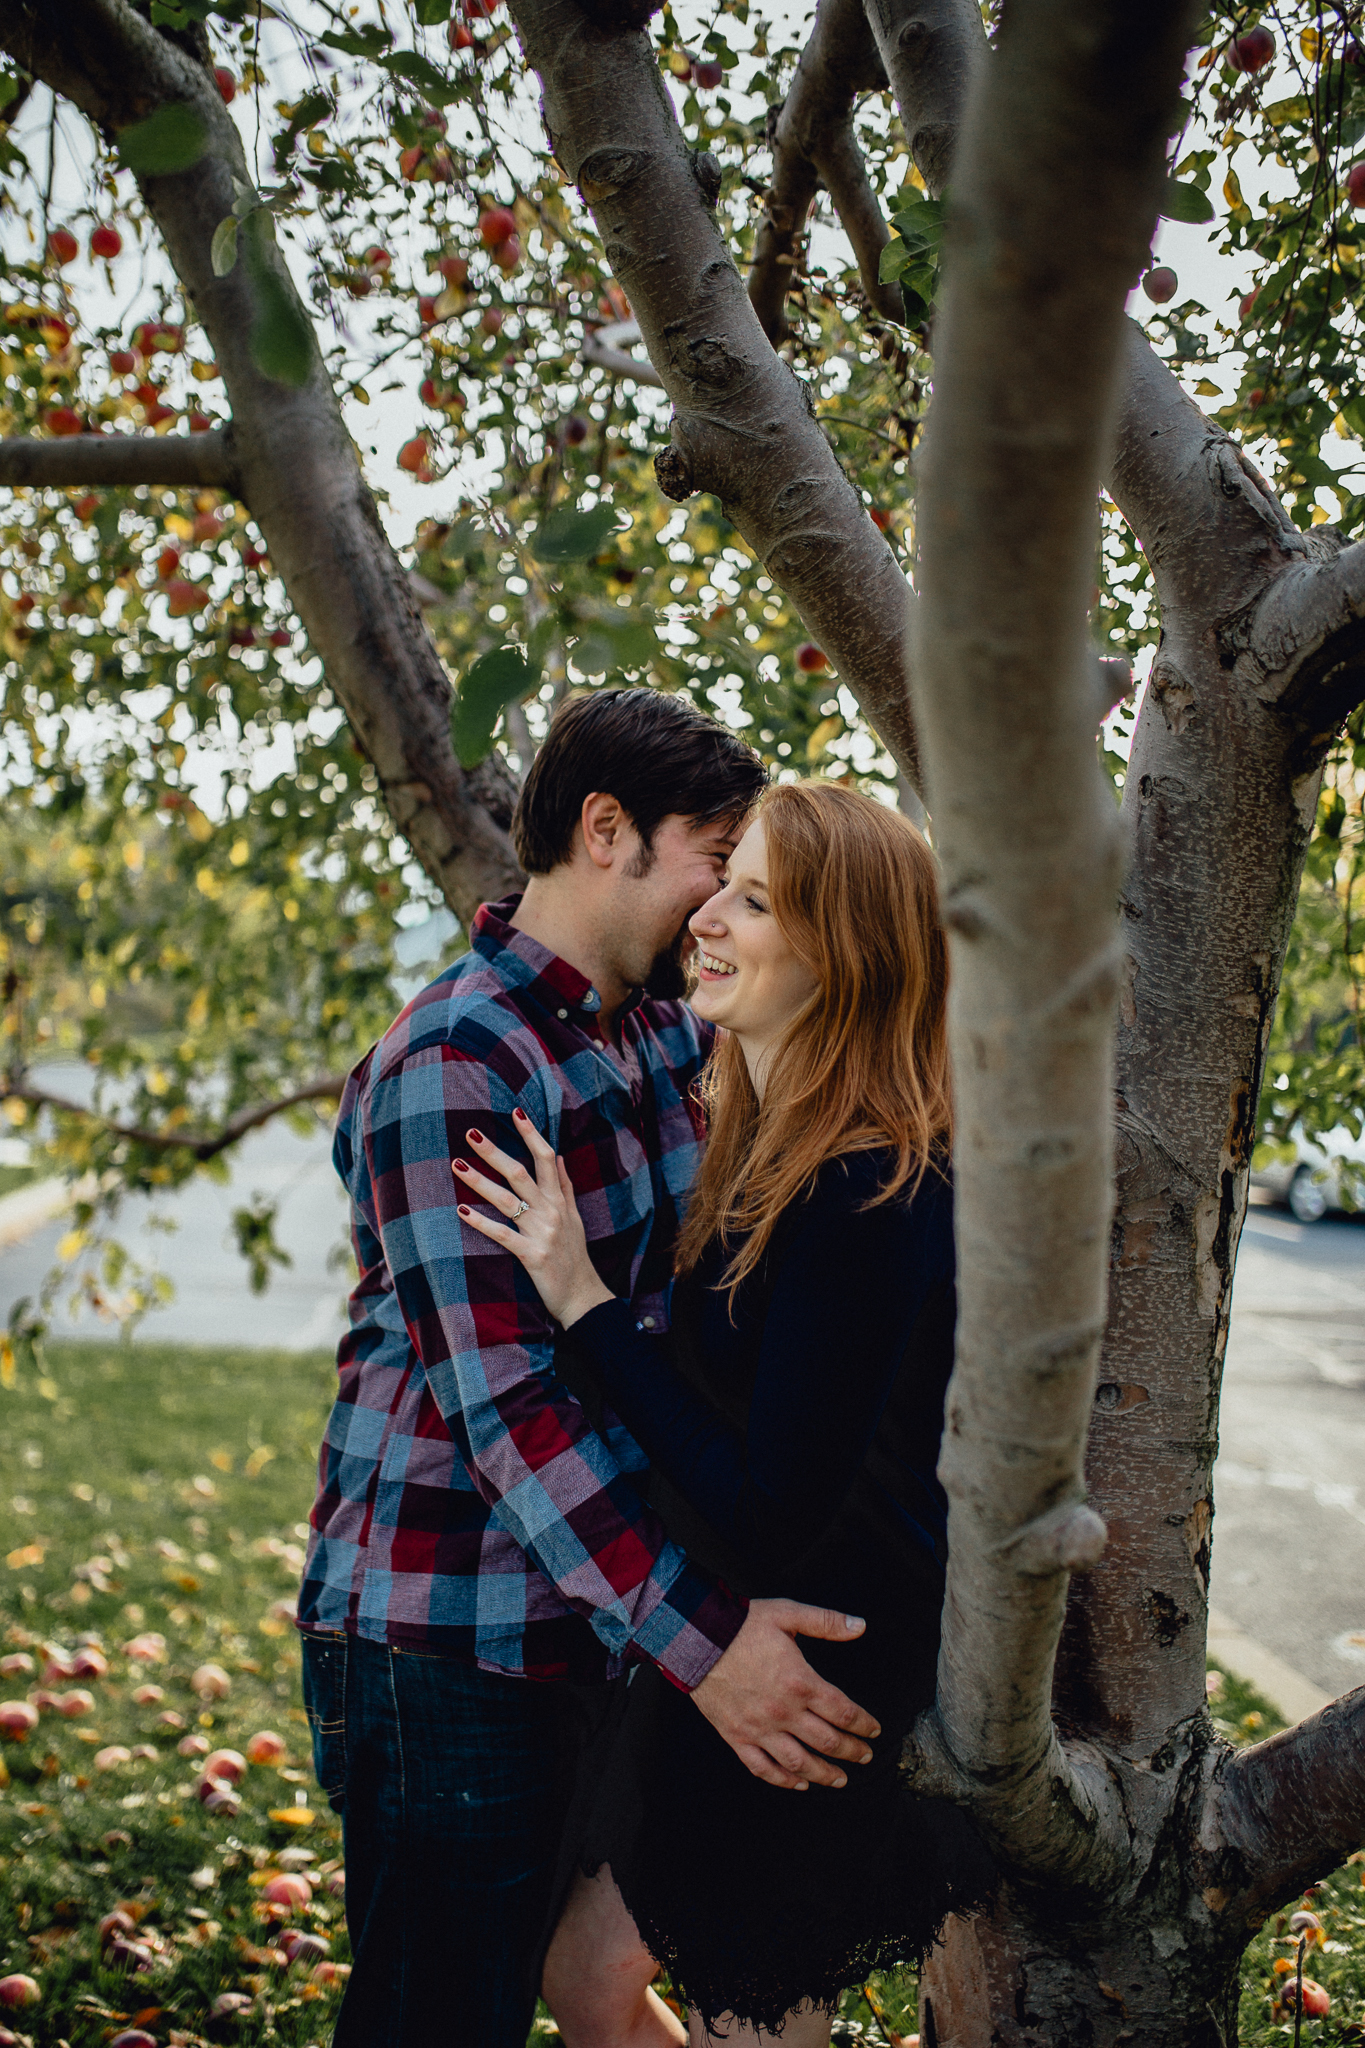 ENGAGEd-couple-posing-in-apple-orchard.jpg